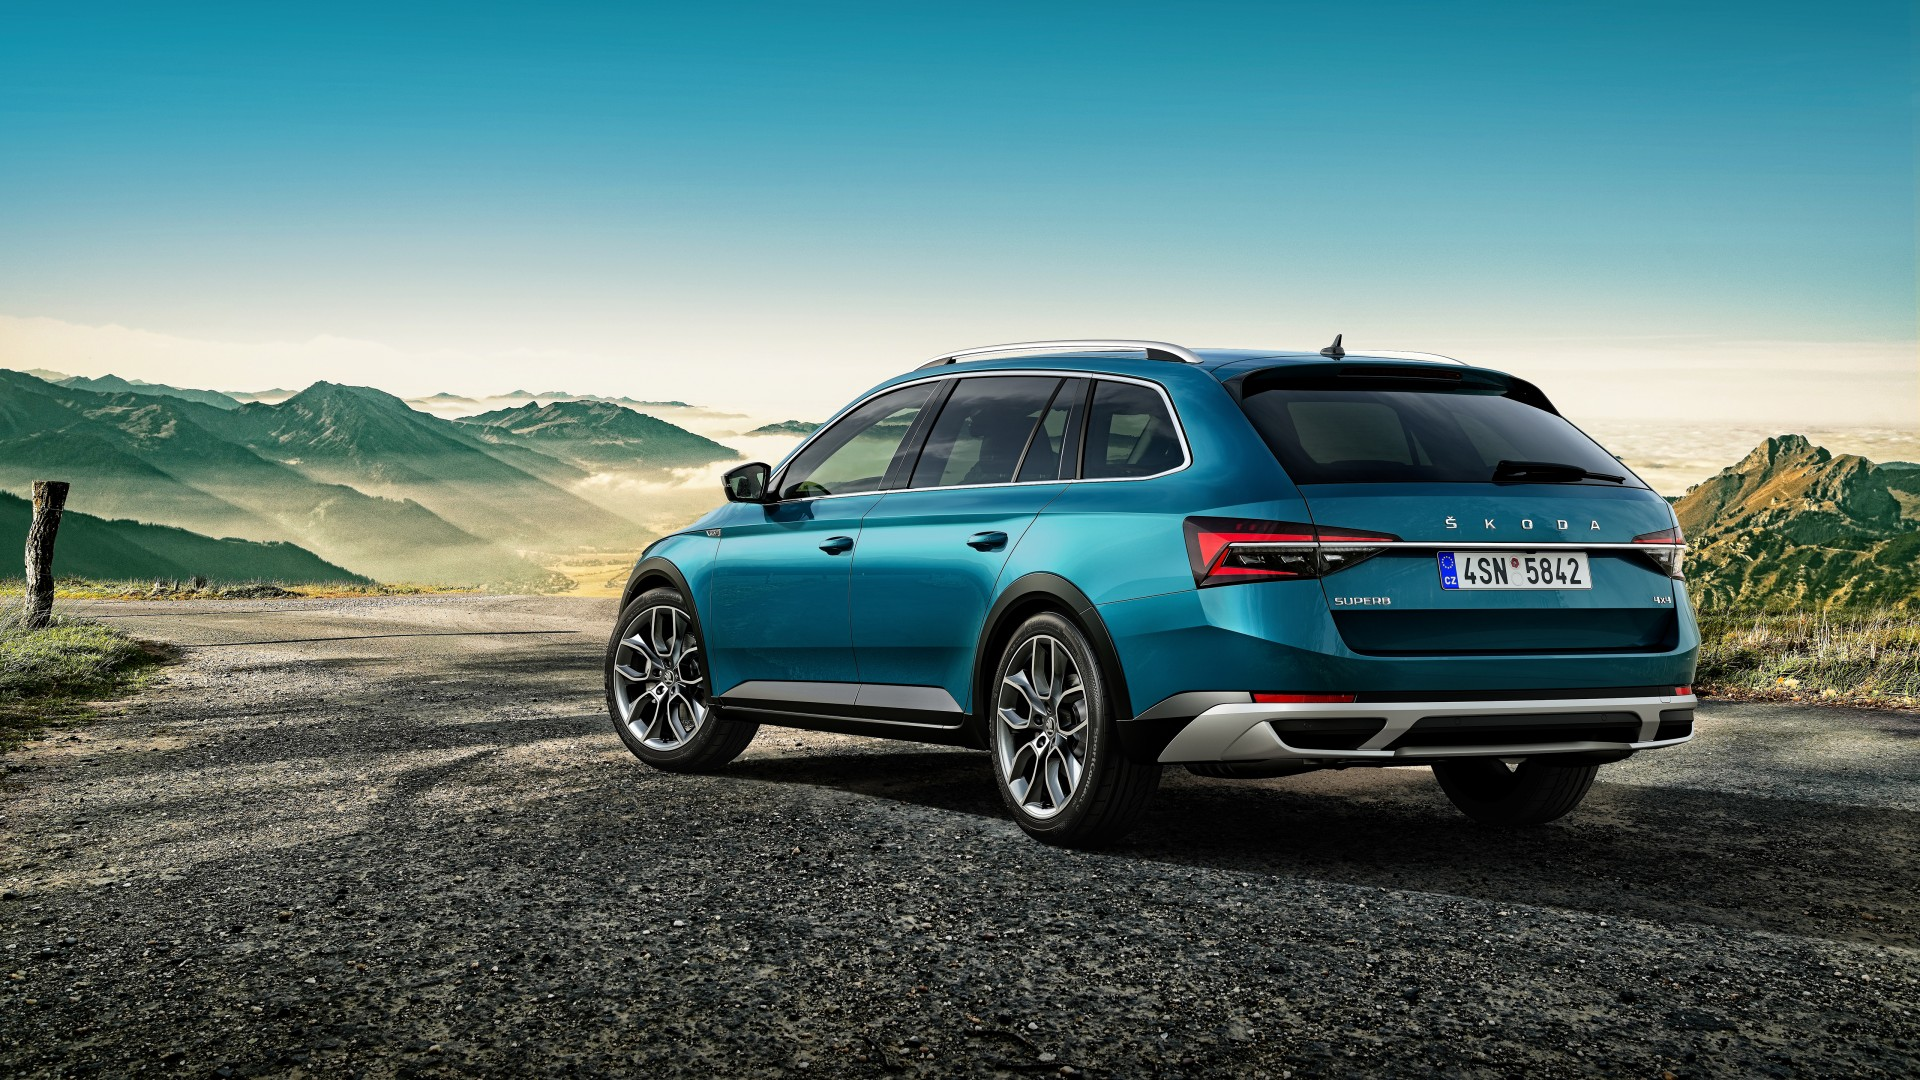 Skoda Superb Scout 2019 5k 3 Wallpaper Hd Car Wallpapers